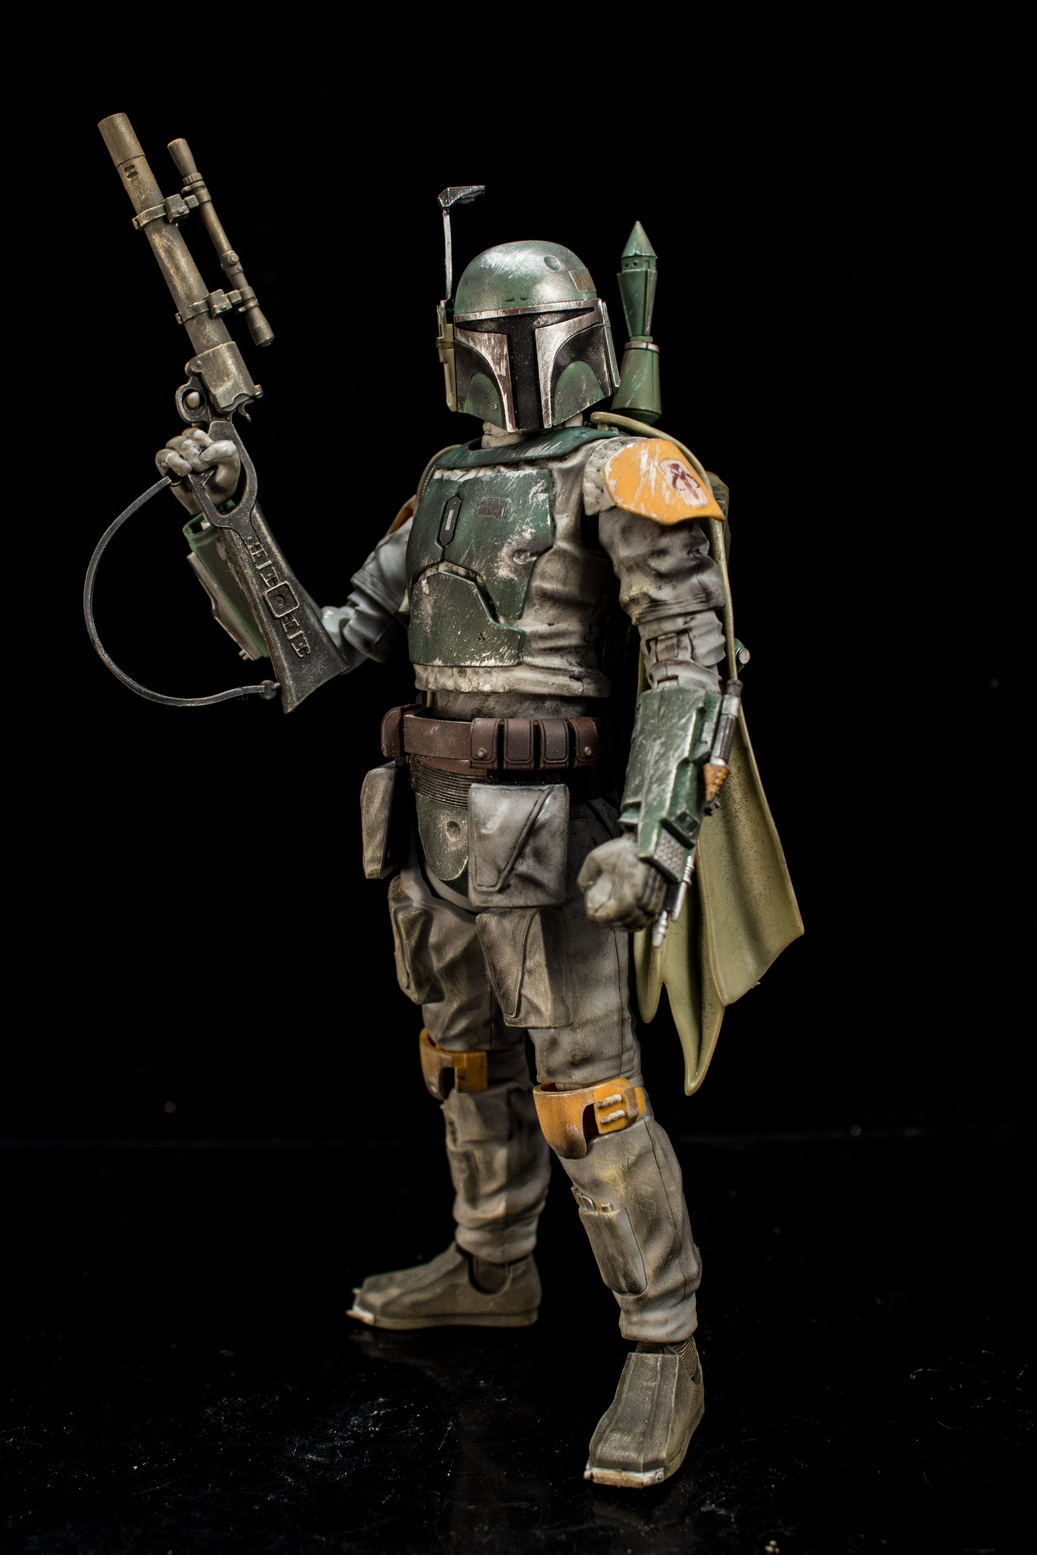 bandai x star wars 112 boba fett modeled by xterry